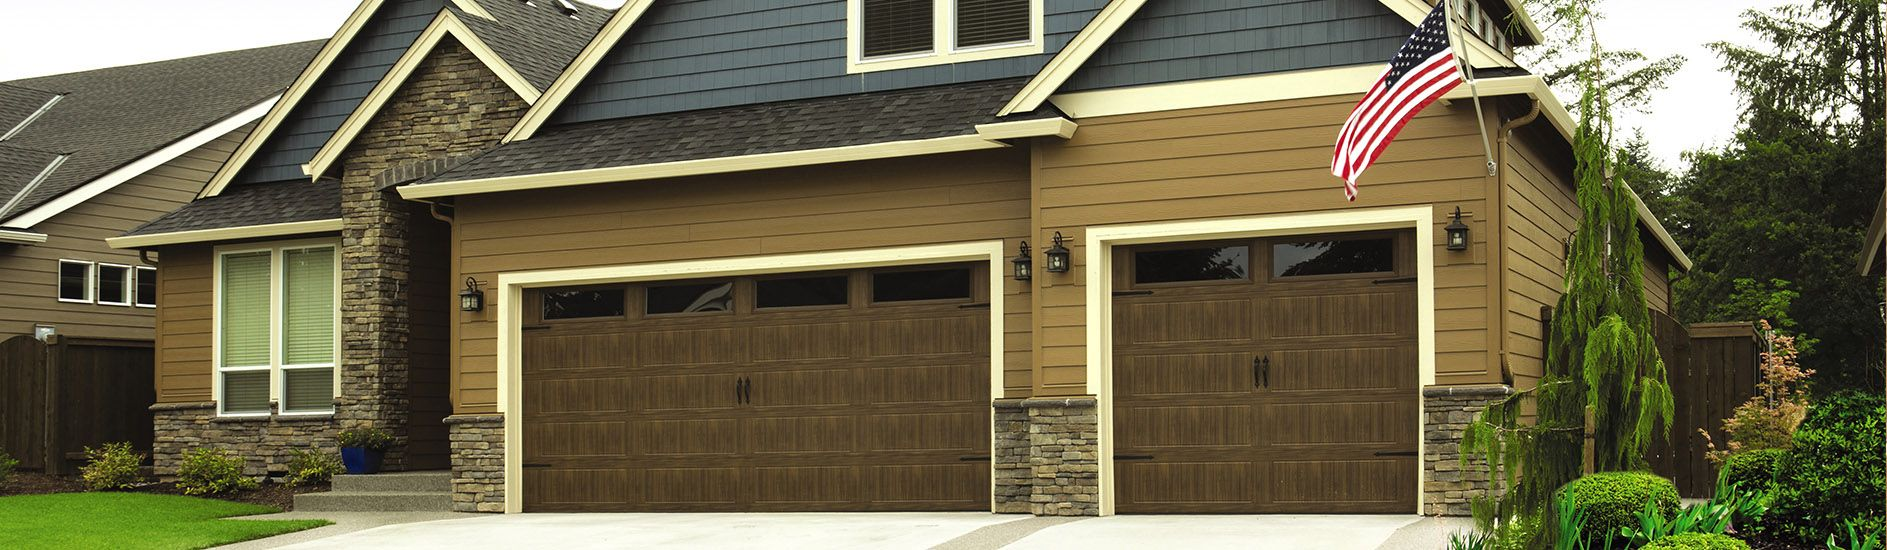 Wayne Dalton 8300 Series Sonoma Ranch Mission Oak Stockton Aspen Garage Doors Garage Door Repair Wayne Dalton Garage Doors